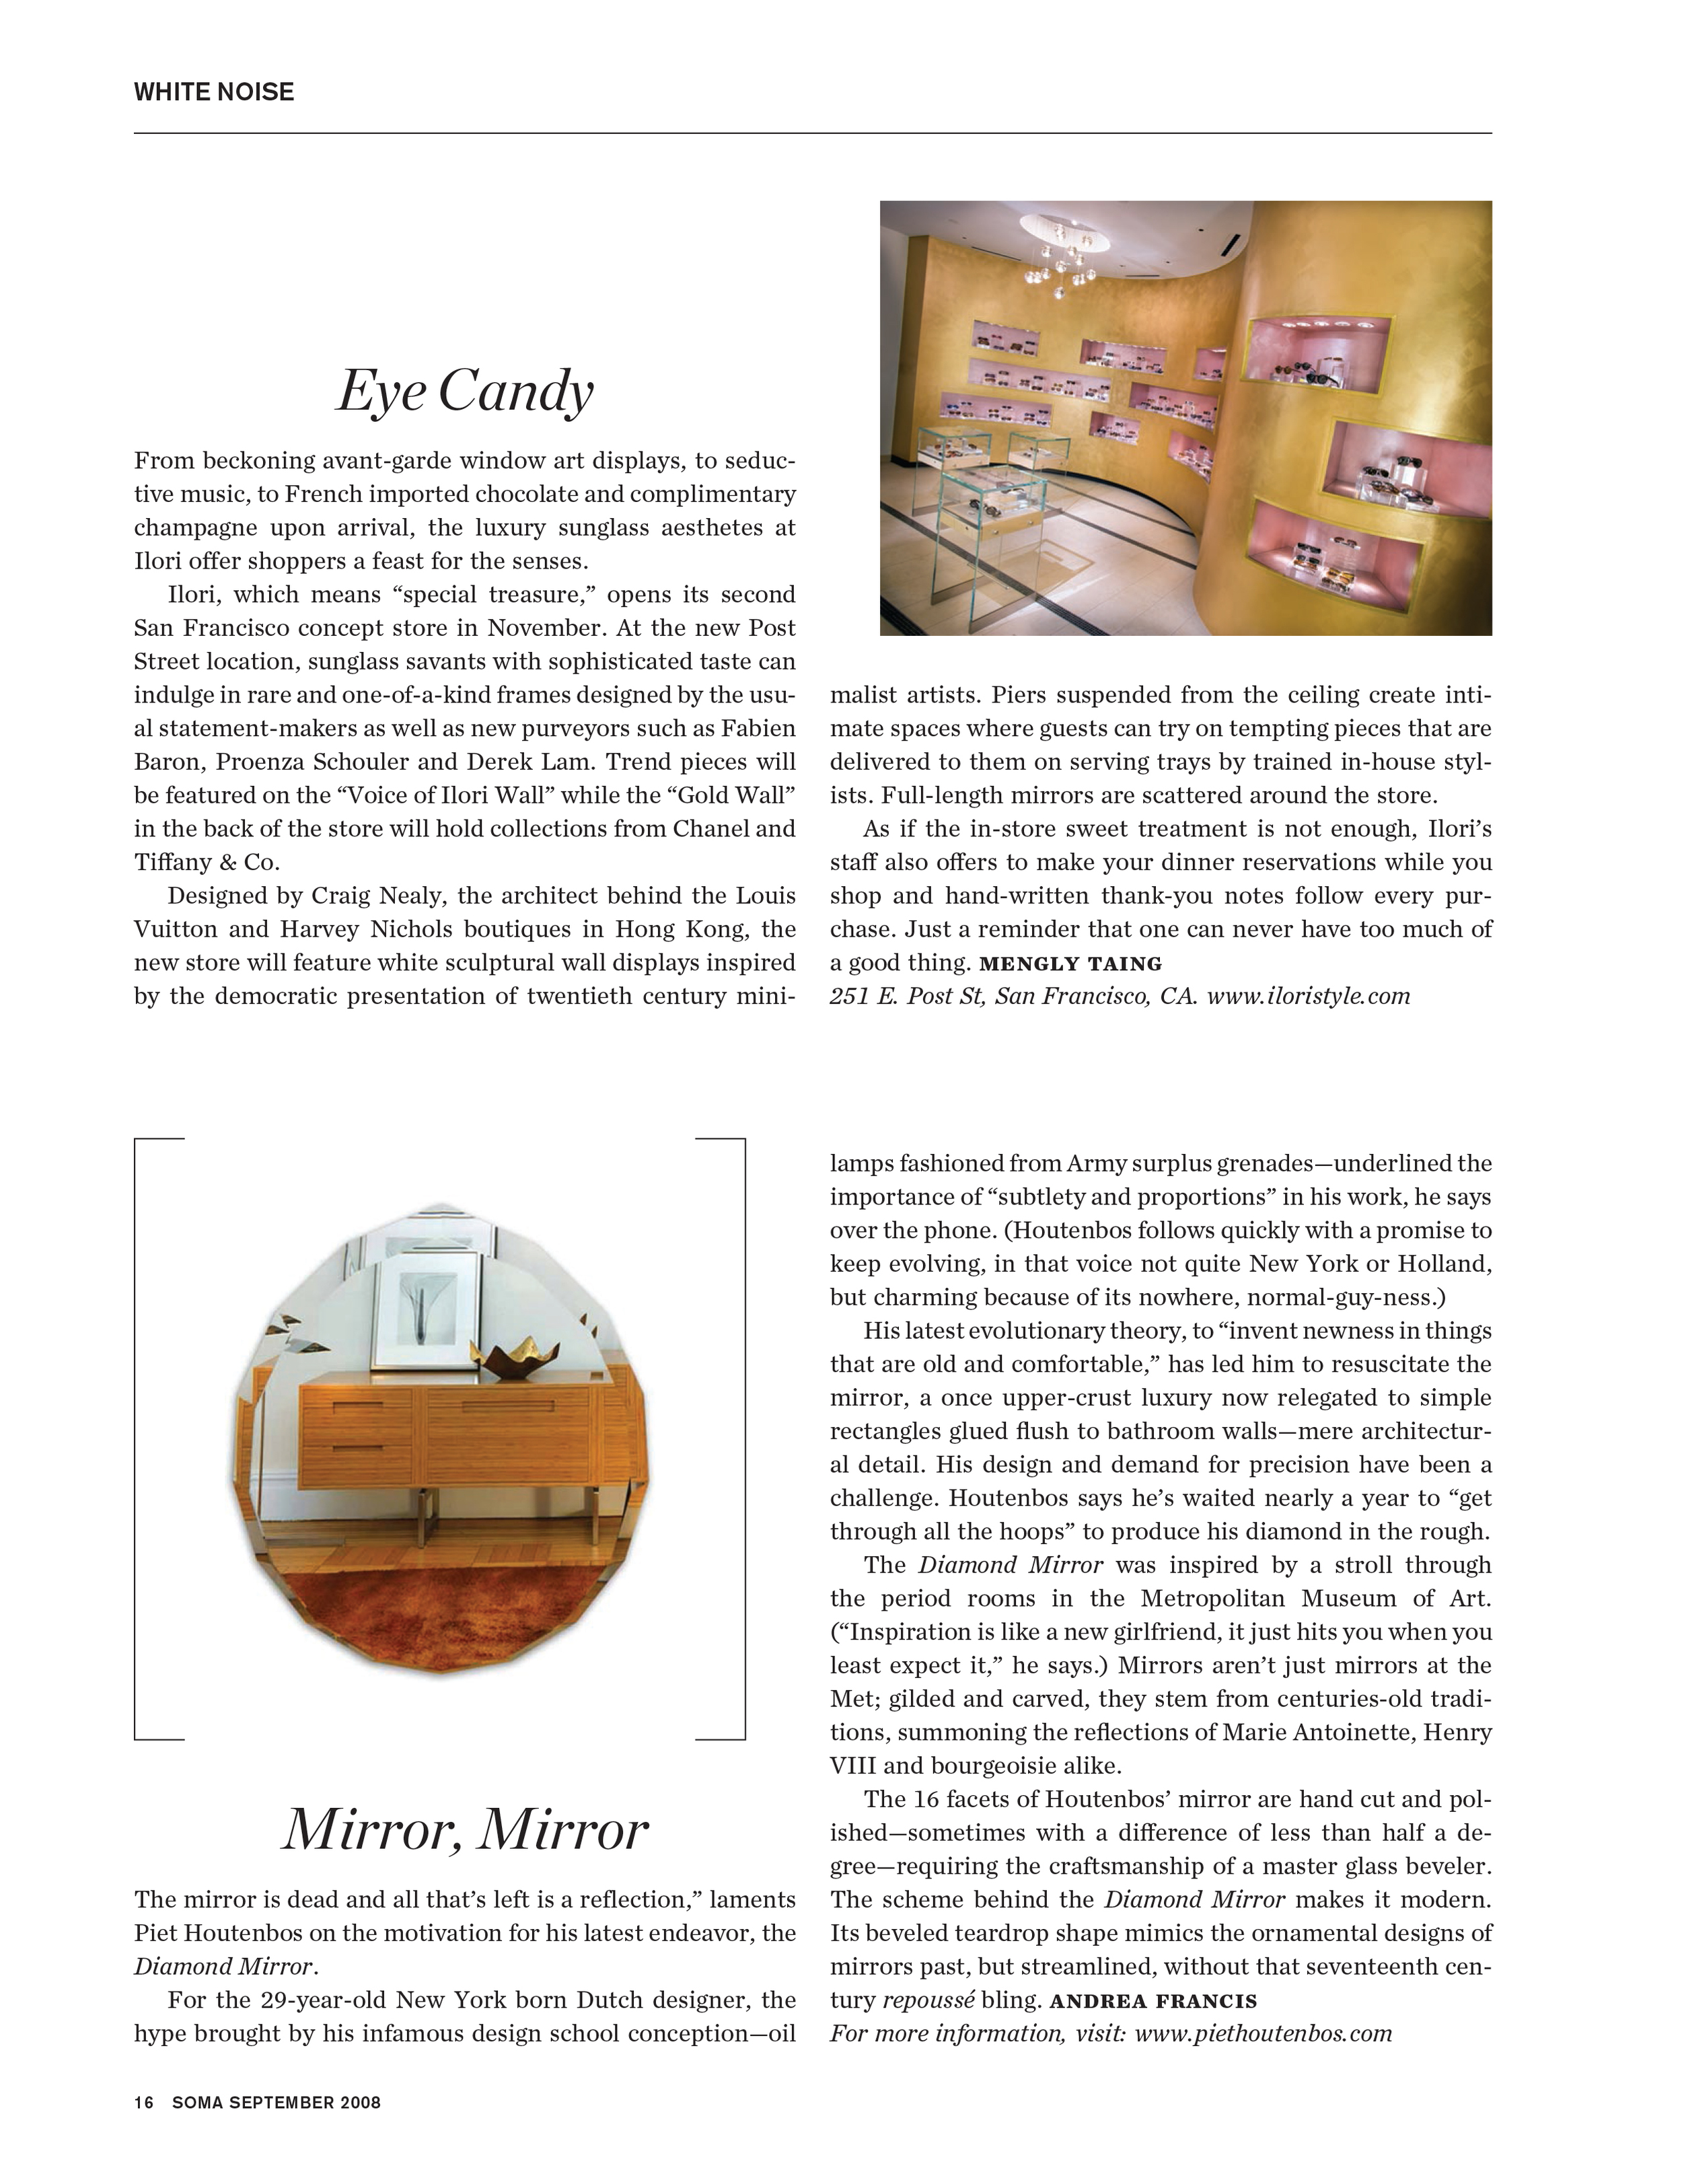 The Diamond Mirror featured in Soma Magazine.